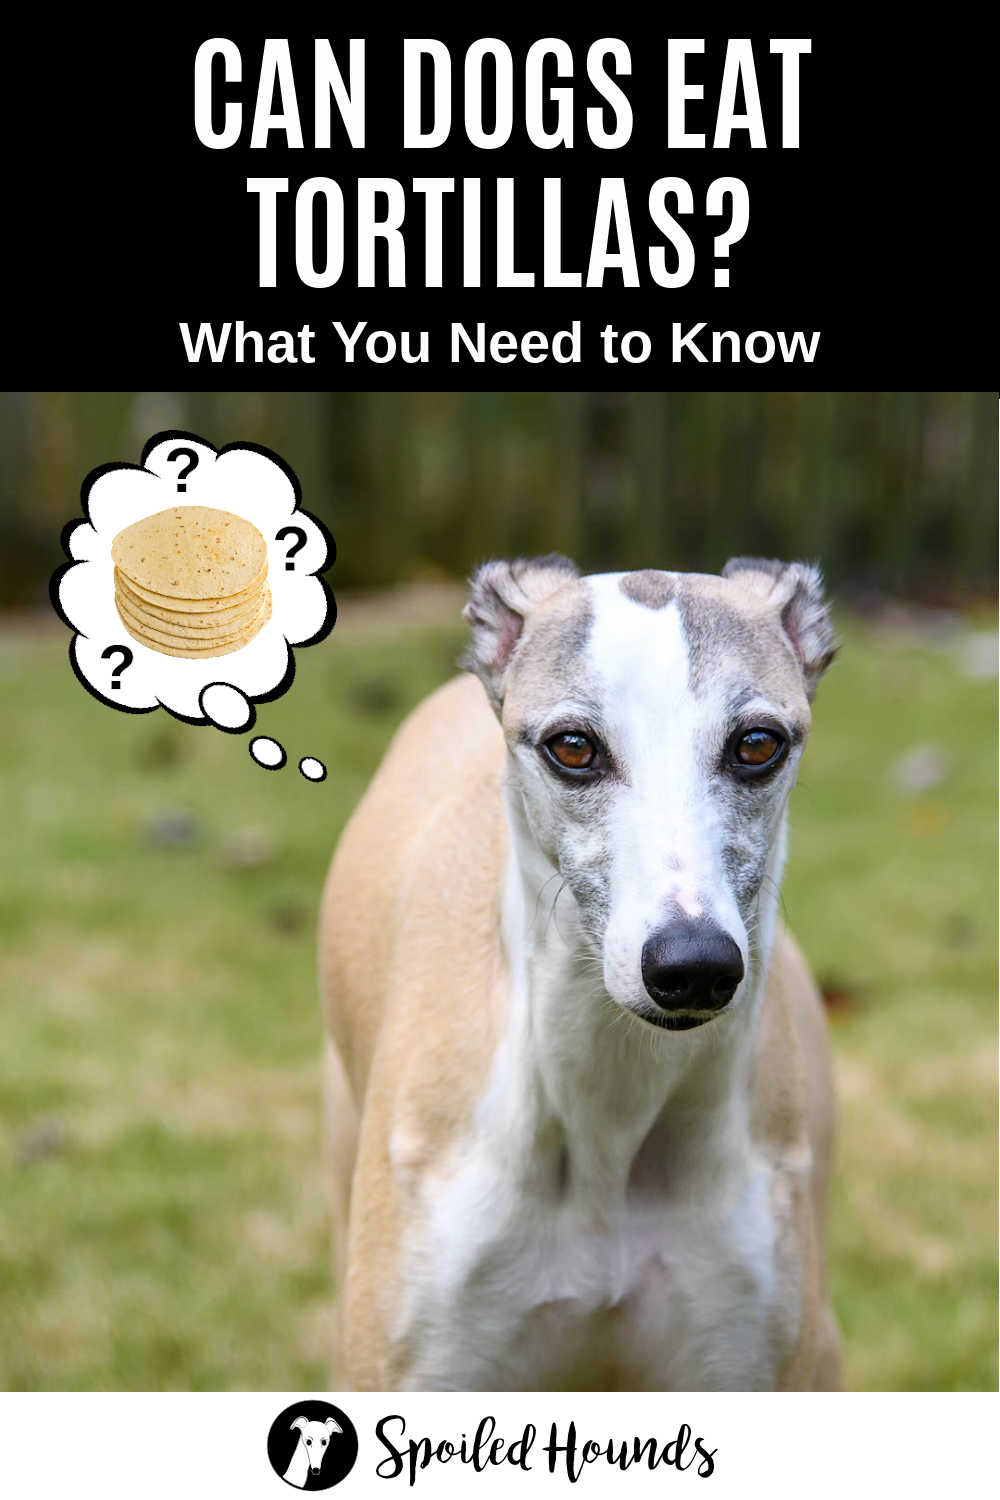 whippet dog wondering about tortillas